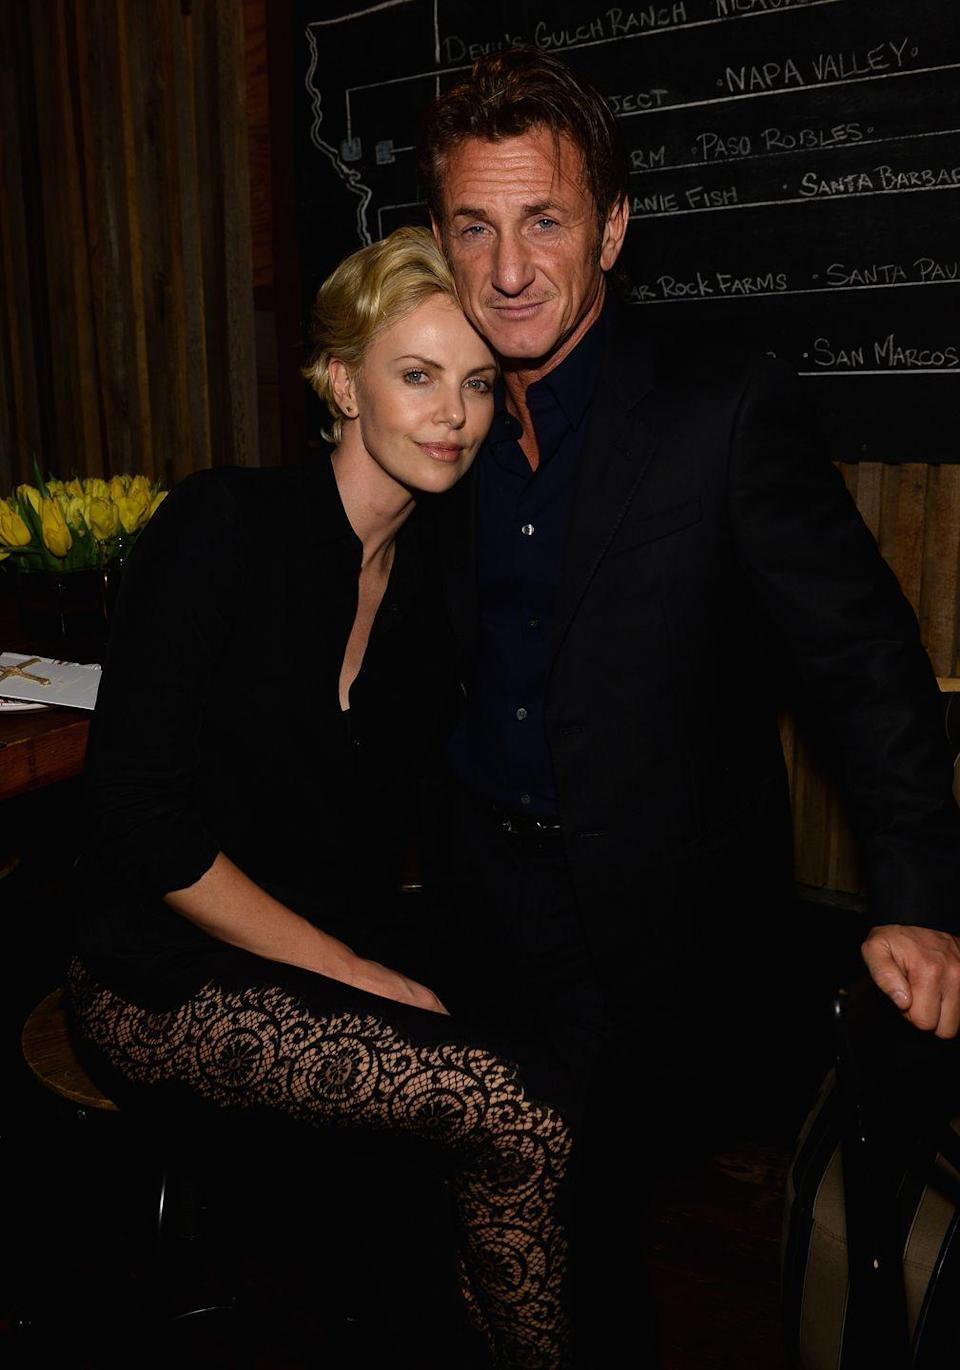 """<p>Theron starred in the Penn-directed movie <em>The Last Face</em>, and the two were even rumored to be engaged before the actress called it quits (allegedly by <a href=""""http://jezebel.com/charlize-theron-broke-up-with-sean-penn-by-ghosting-him-1712760688"""" rel=""""nofollow noopener"""" target=""""_blank"""" data-ylk=""""slk:&quot;ghosting&quot;"""" class=""""link rapid-noclick-resp"""">""""ghosting""""</a> him) in June 2015. One year later, they had to <a href=""""http://www.eonline.com/news/766623/charlize-theron-and-sean-penn-keep-their-distance-in-cannes-as-their-new-movie-gets-panned"""" rel=""""nofollow noopener"""" target=""""_blank"""" data-ylk=""""slk:reunite"""" class=""""link rapid-noclick-resp"""">reunite</a> while doing press for the film at the 2016 Cannes Film Festival.</p>"""